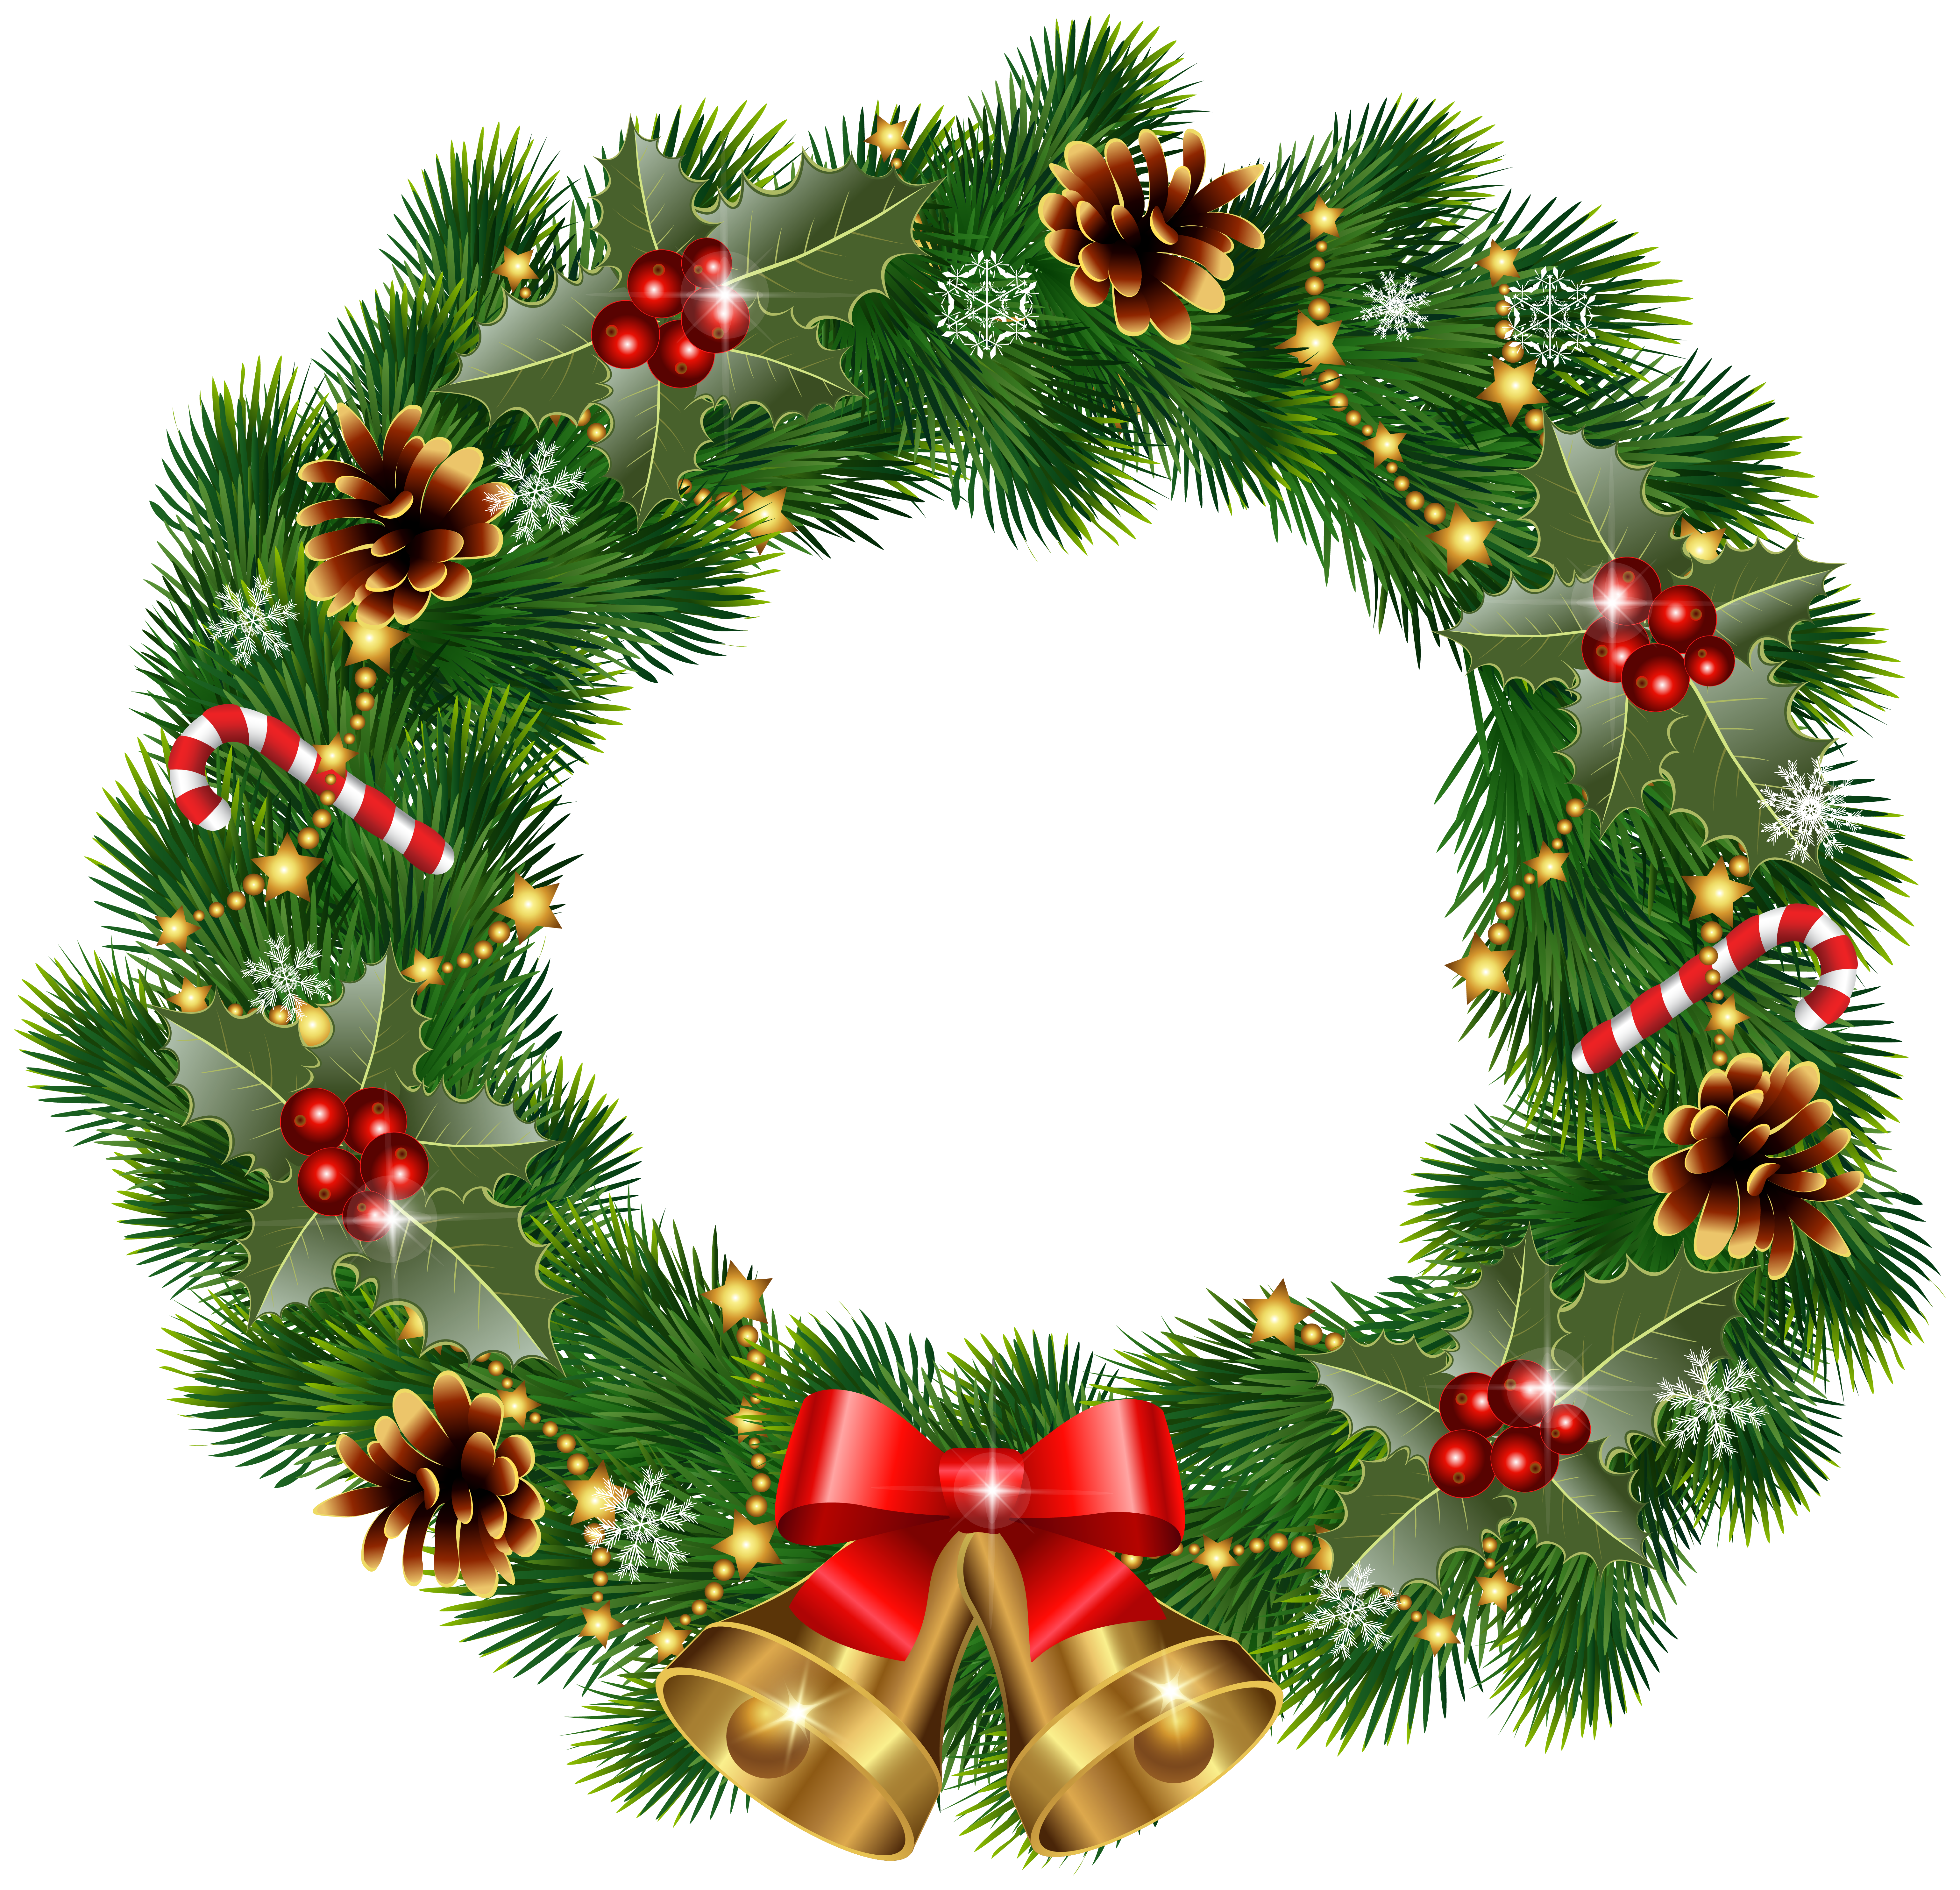 Christmas wreaths png. Wreath with bells clipart